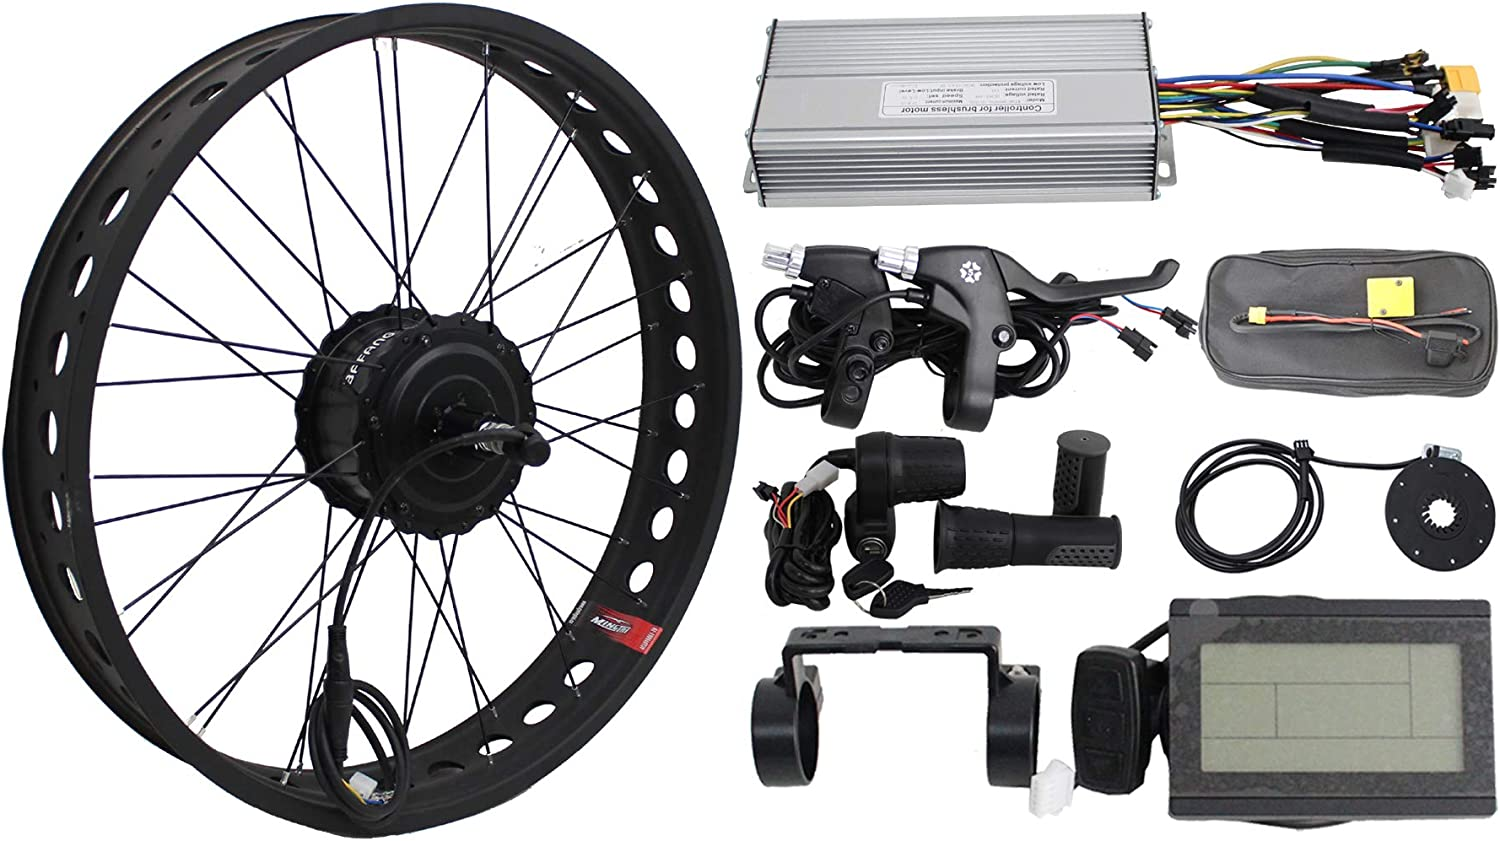 """Customized 20/""""//24/""""//26/""""x 4.0 Fat Tire for Snow E-bike Conversion Kit in Our Store"""